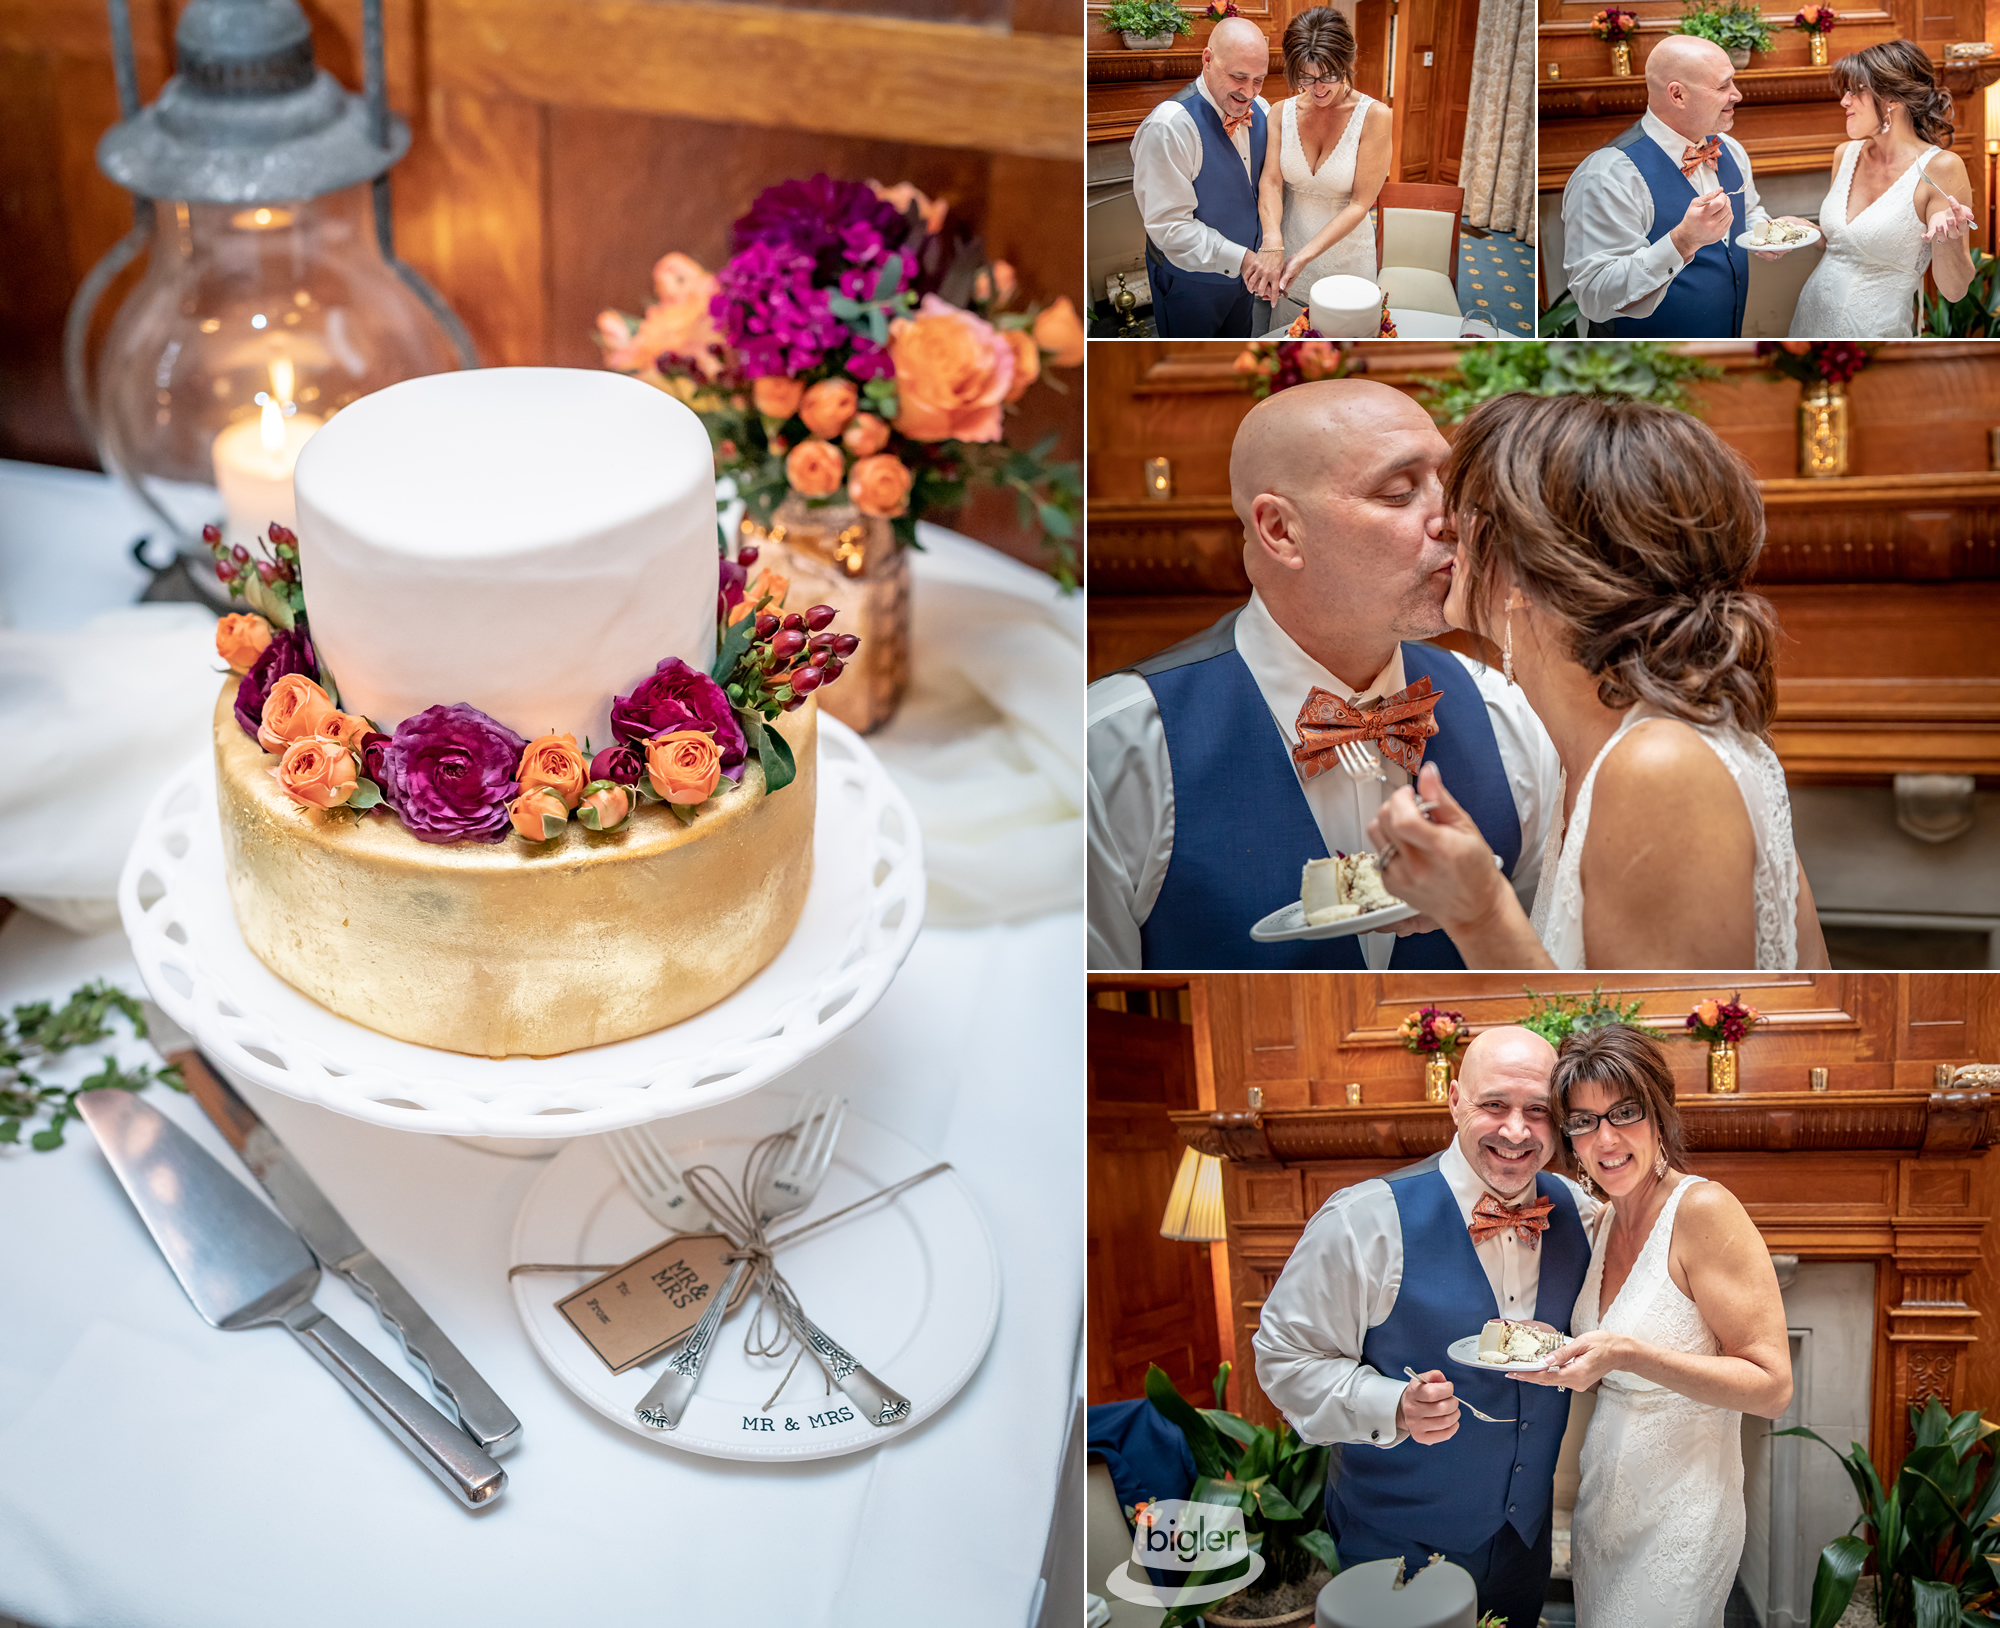 20181123_-_27_-_Melissa_and_Richard_Otesaga_Wedding_Photos